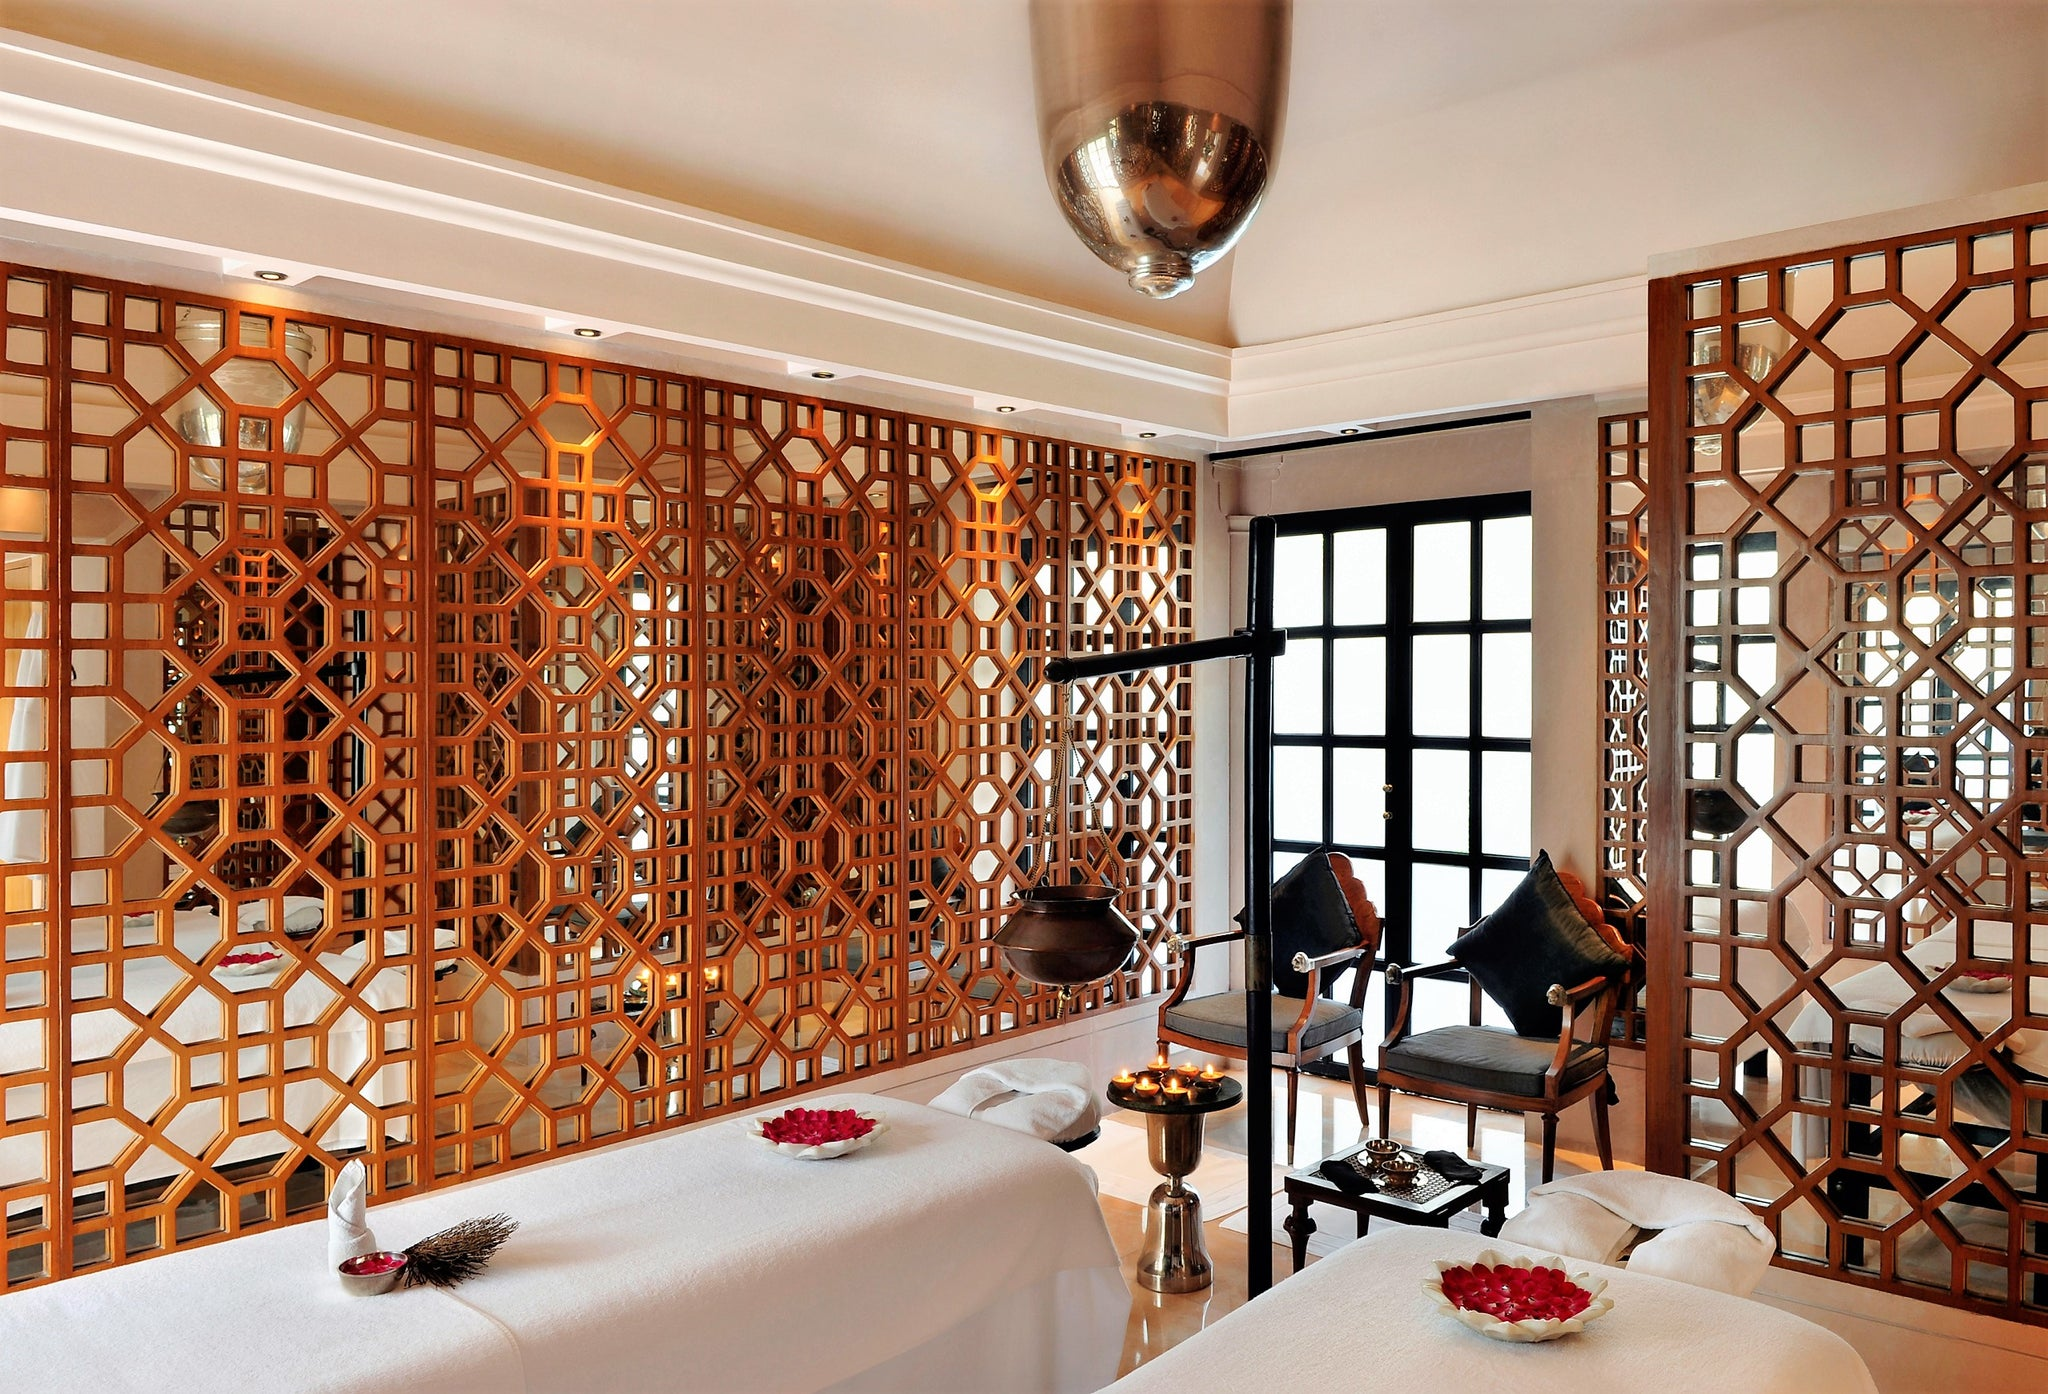 Malavara Top Luxury Ayurveda Retreats - Amanbagh, Rajasthan Spa